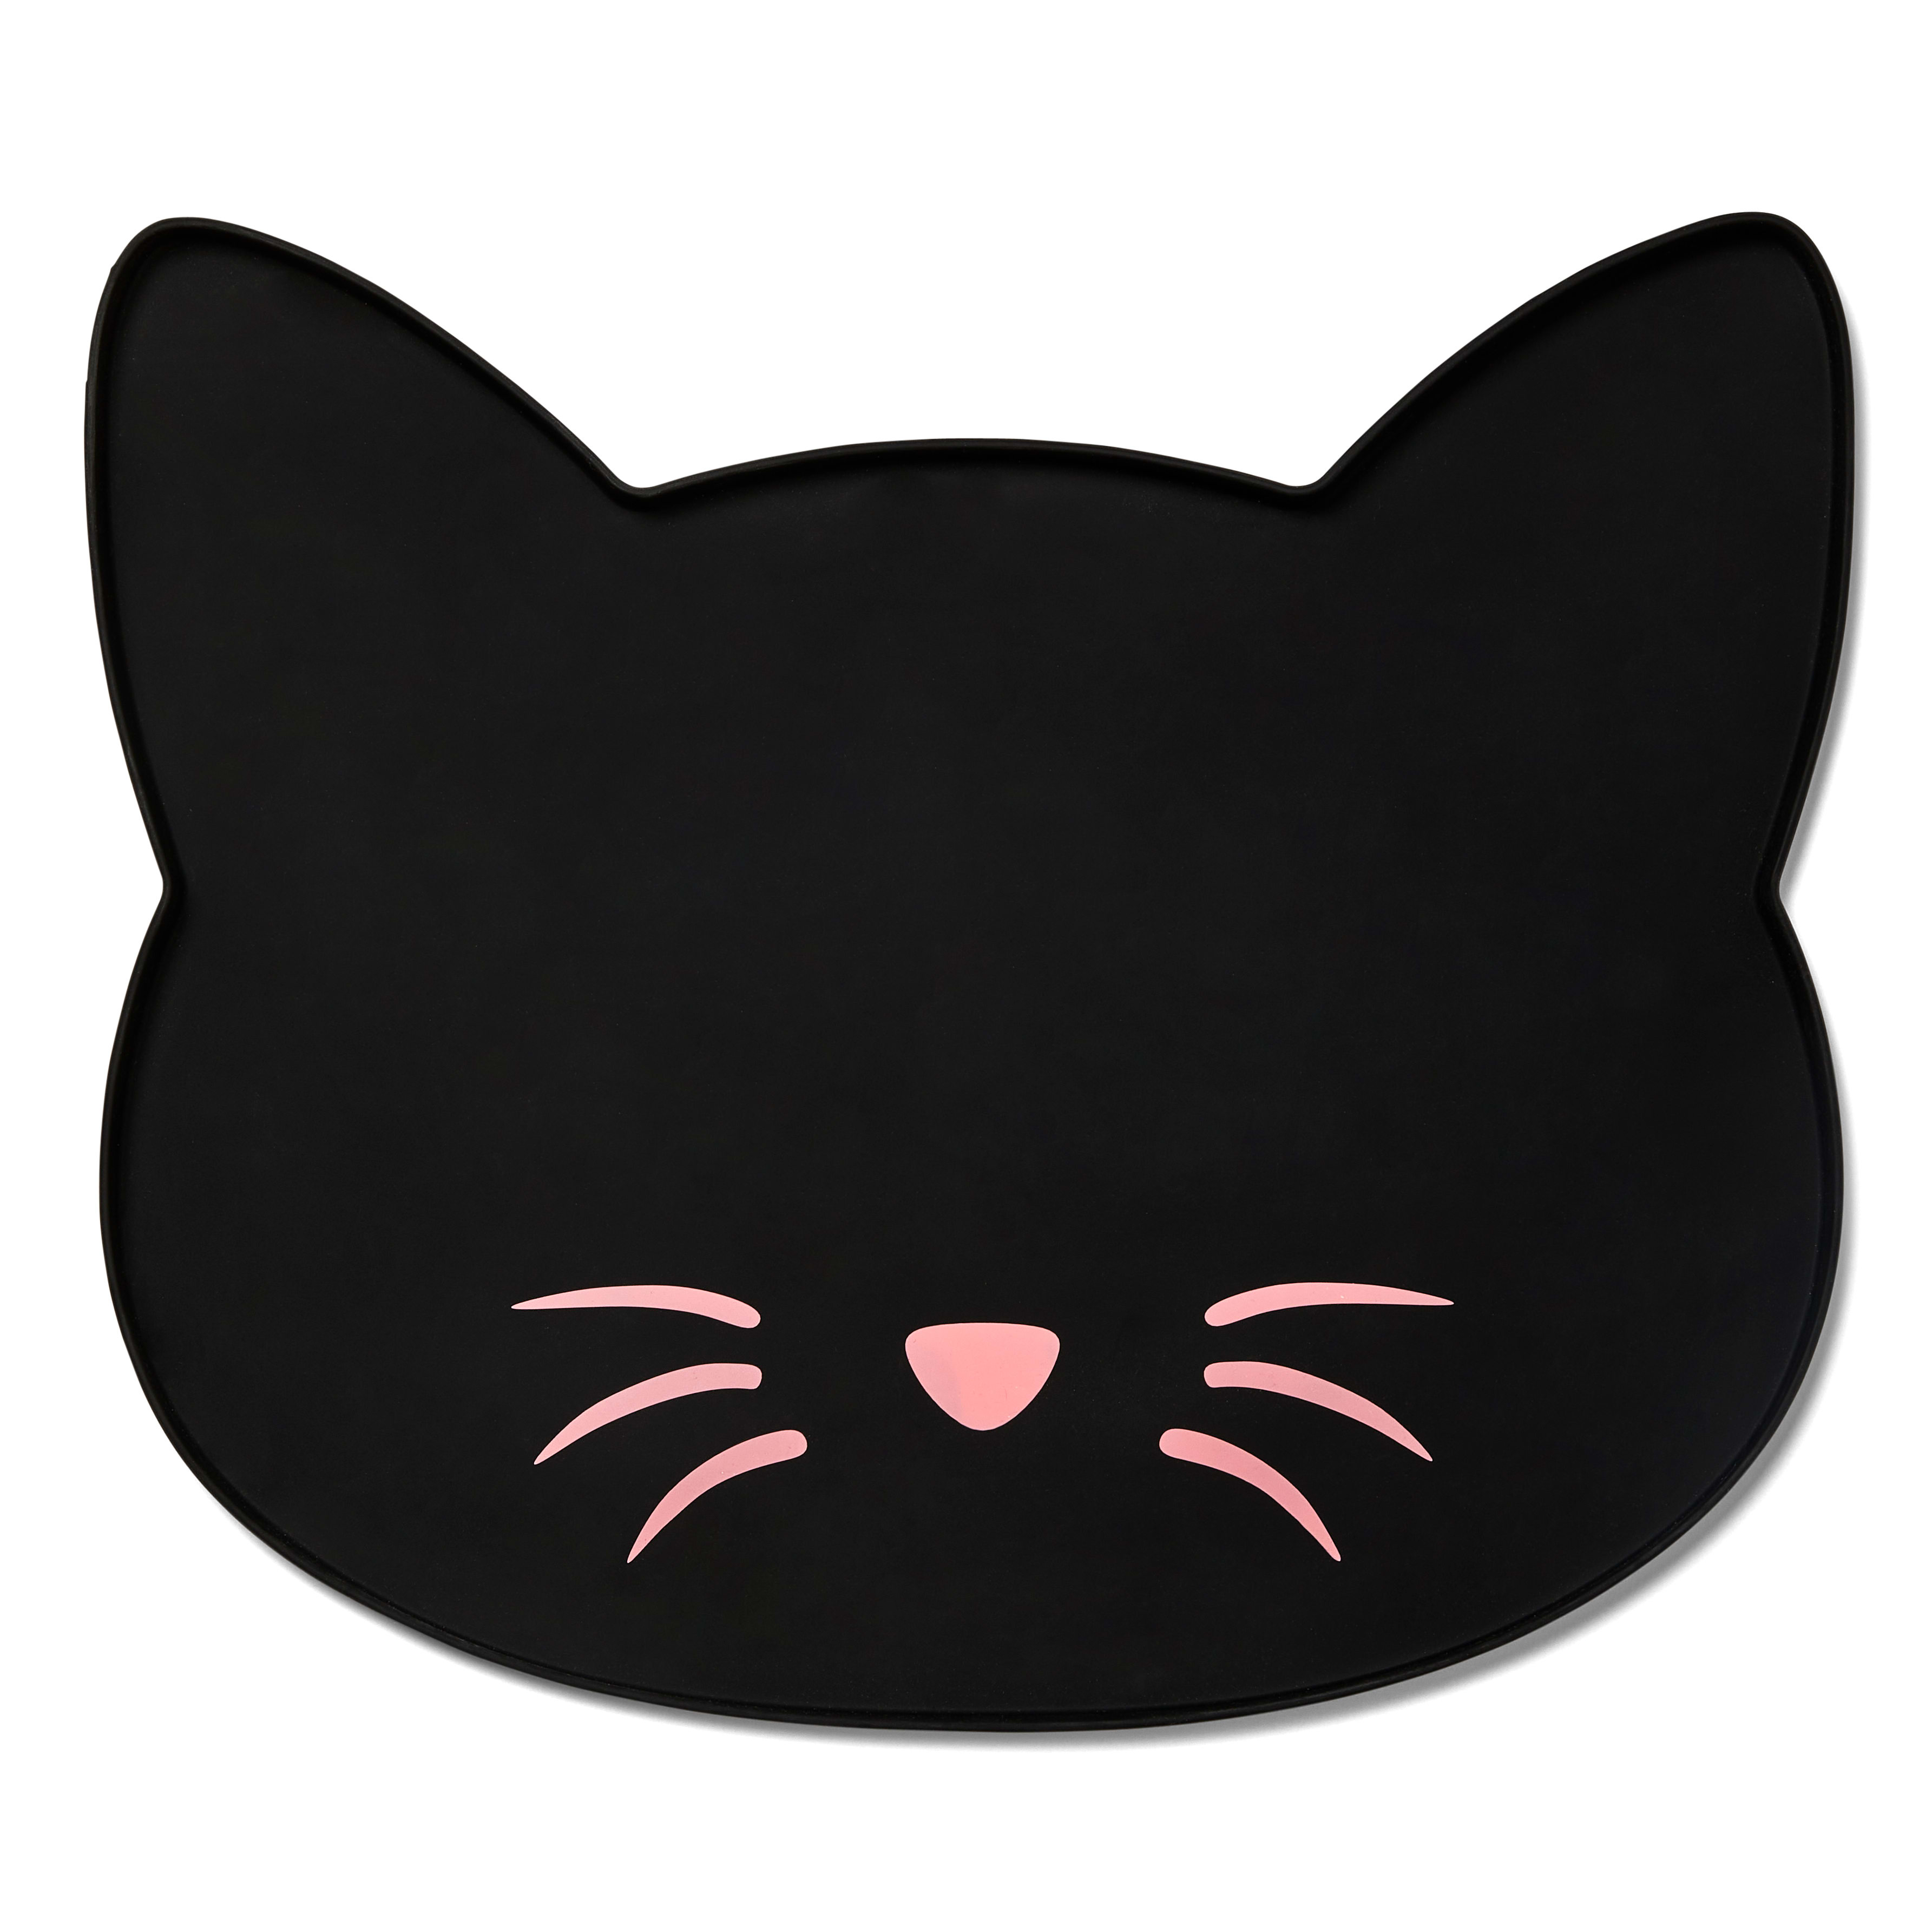 Placemat for Cats Cat dish Placemat Cat Placemat Cat Food Dish Platemat Kitty Placemat Pet Placemat